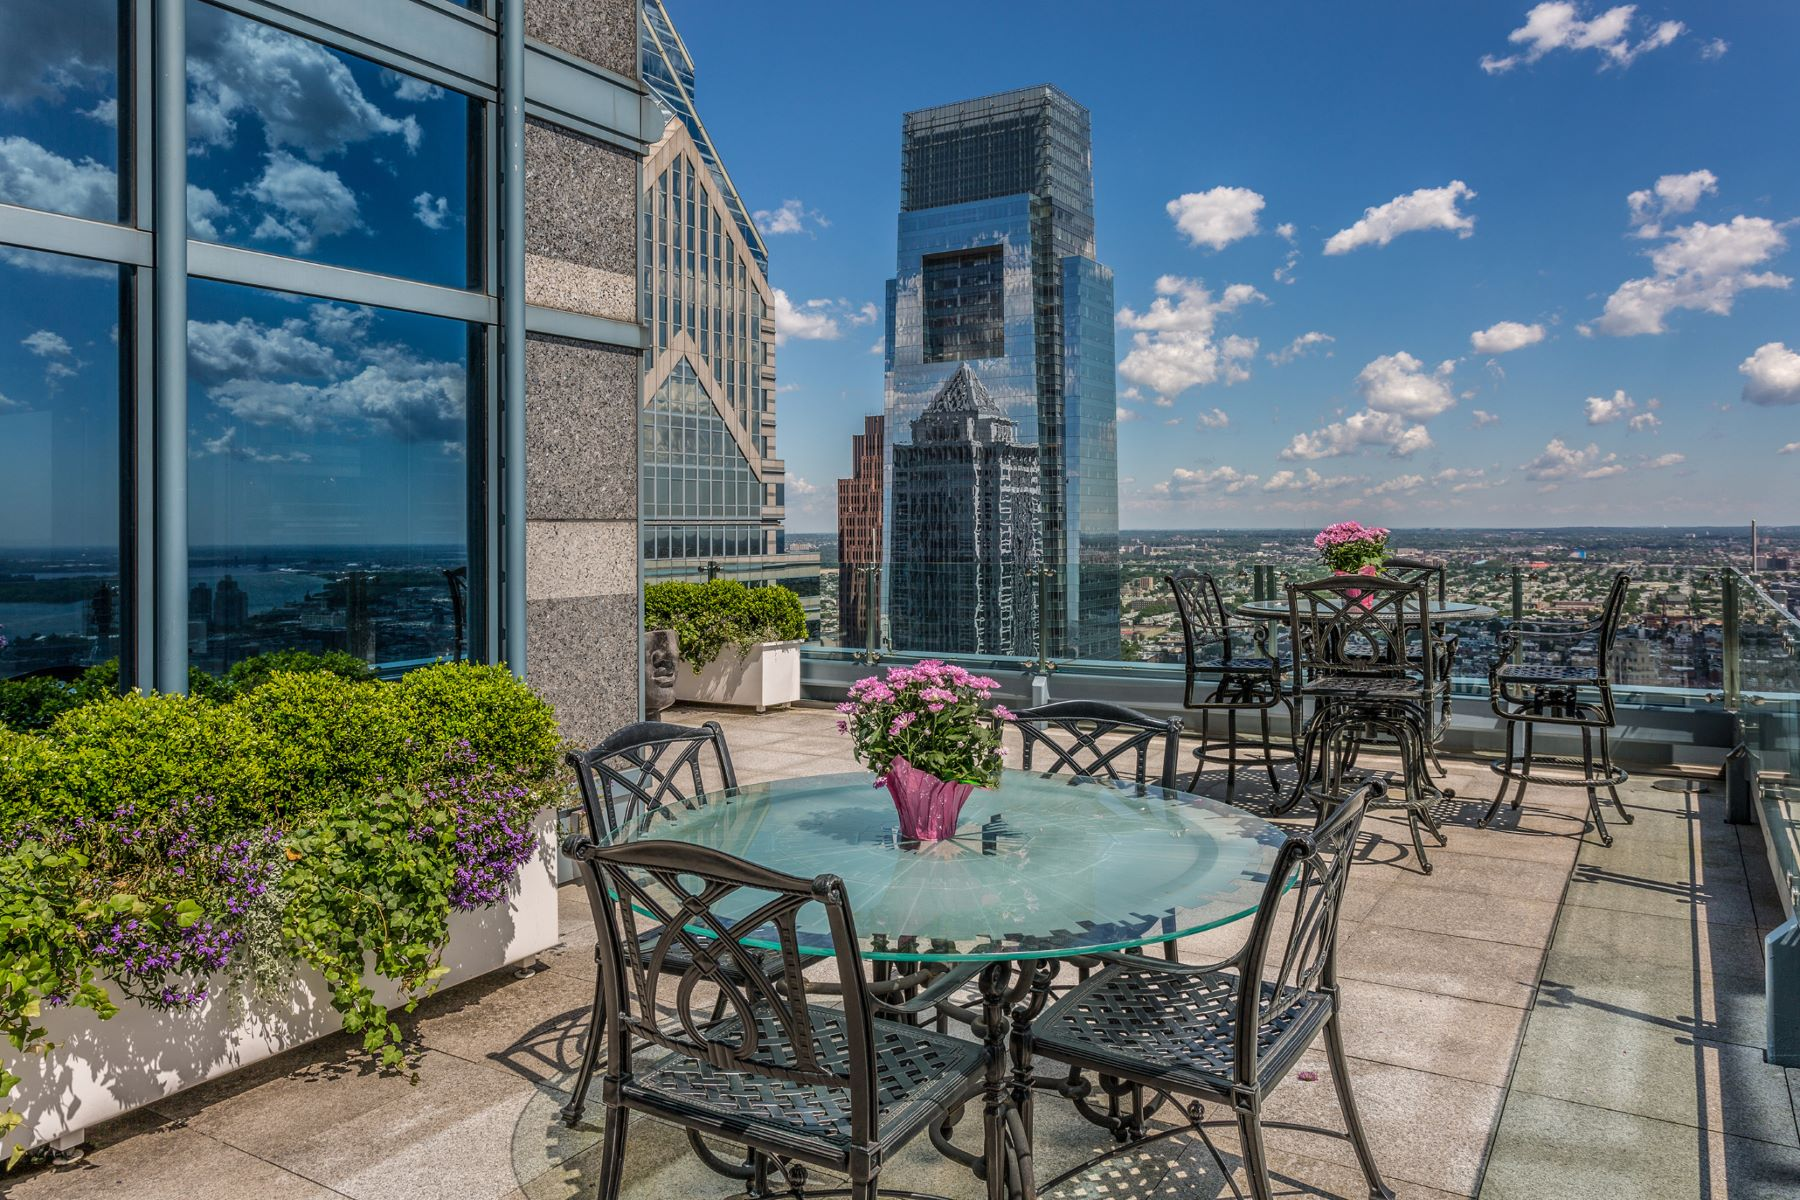 Condominium for Sale at Two Liberty Residence 50 S 16TH ST #4604 4604 Philadelphia, Pennsylvania 19102 United States